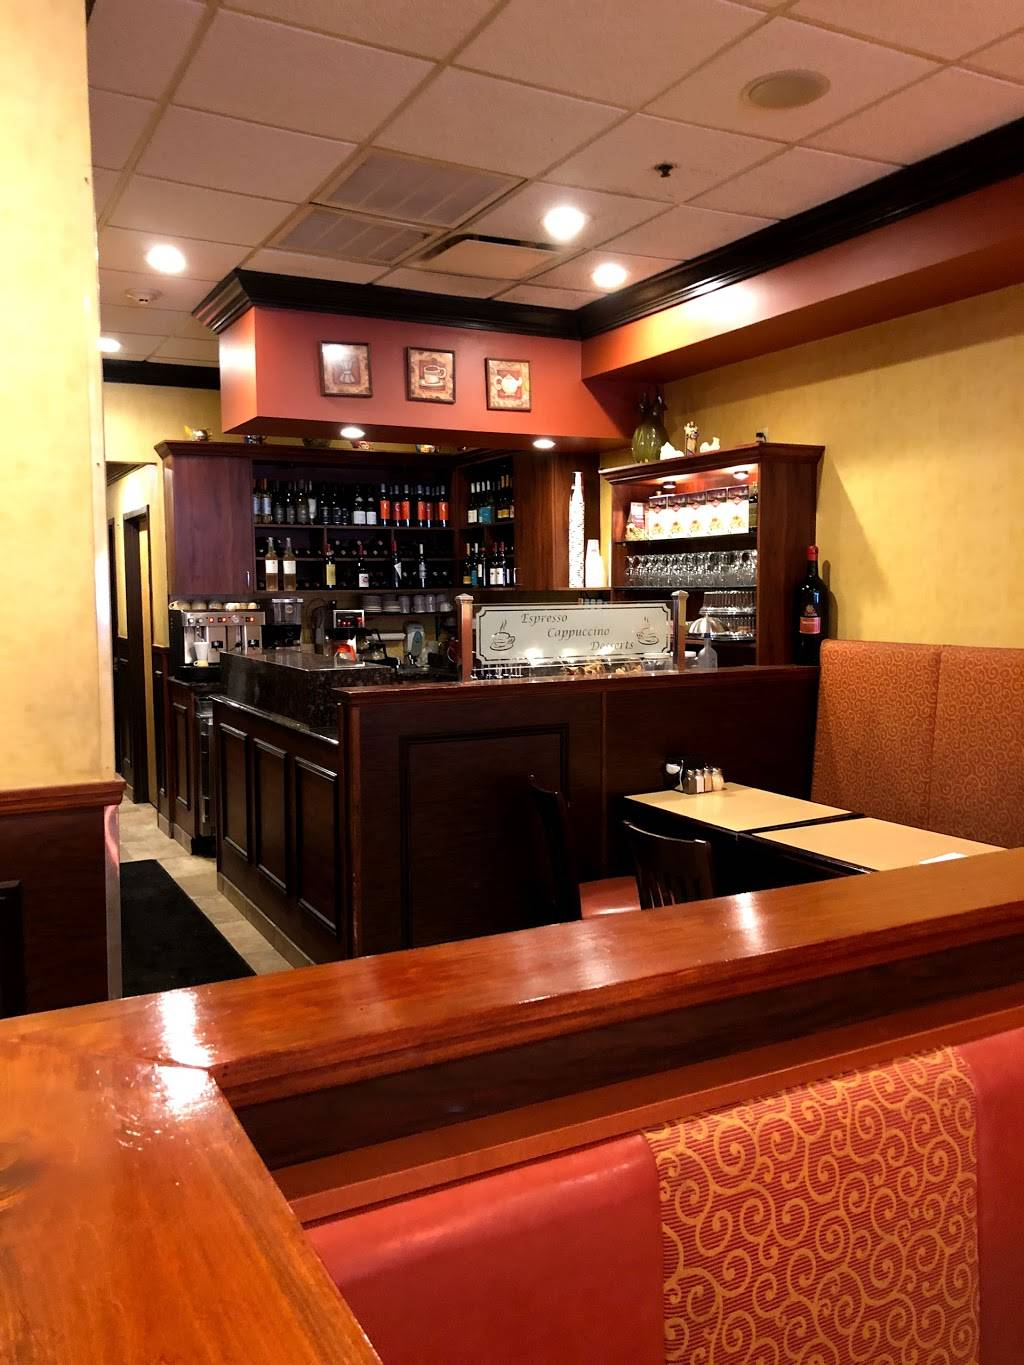 Spuntino | restaurant | 687 Old Country Rd, Dix Hills, NY 11746, USA | 6315479300 OR +1 631-547-9300